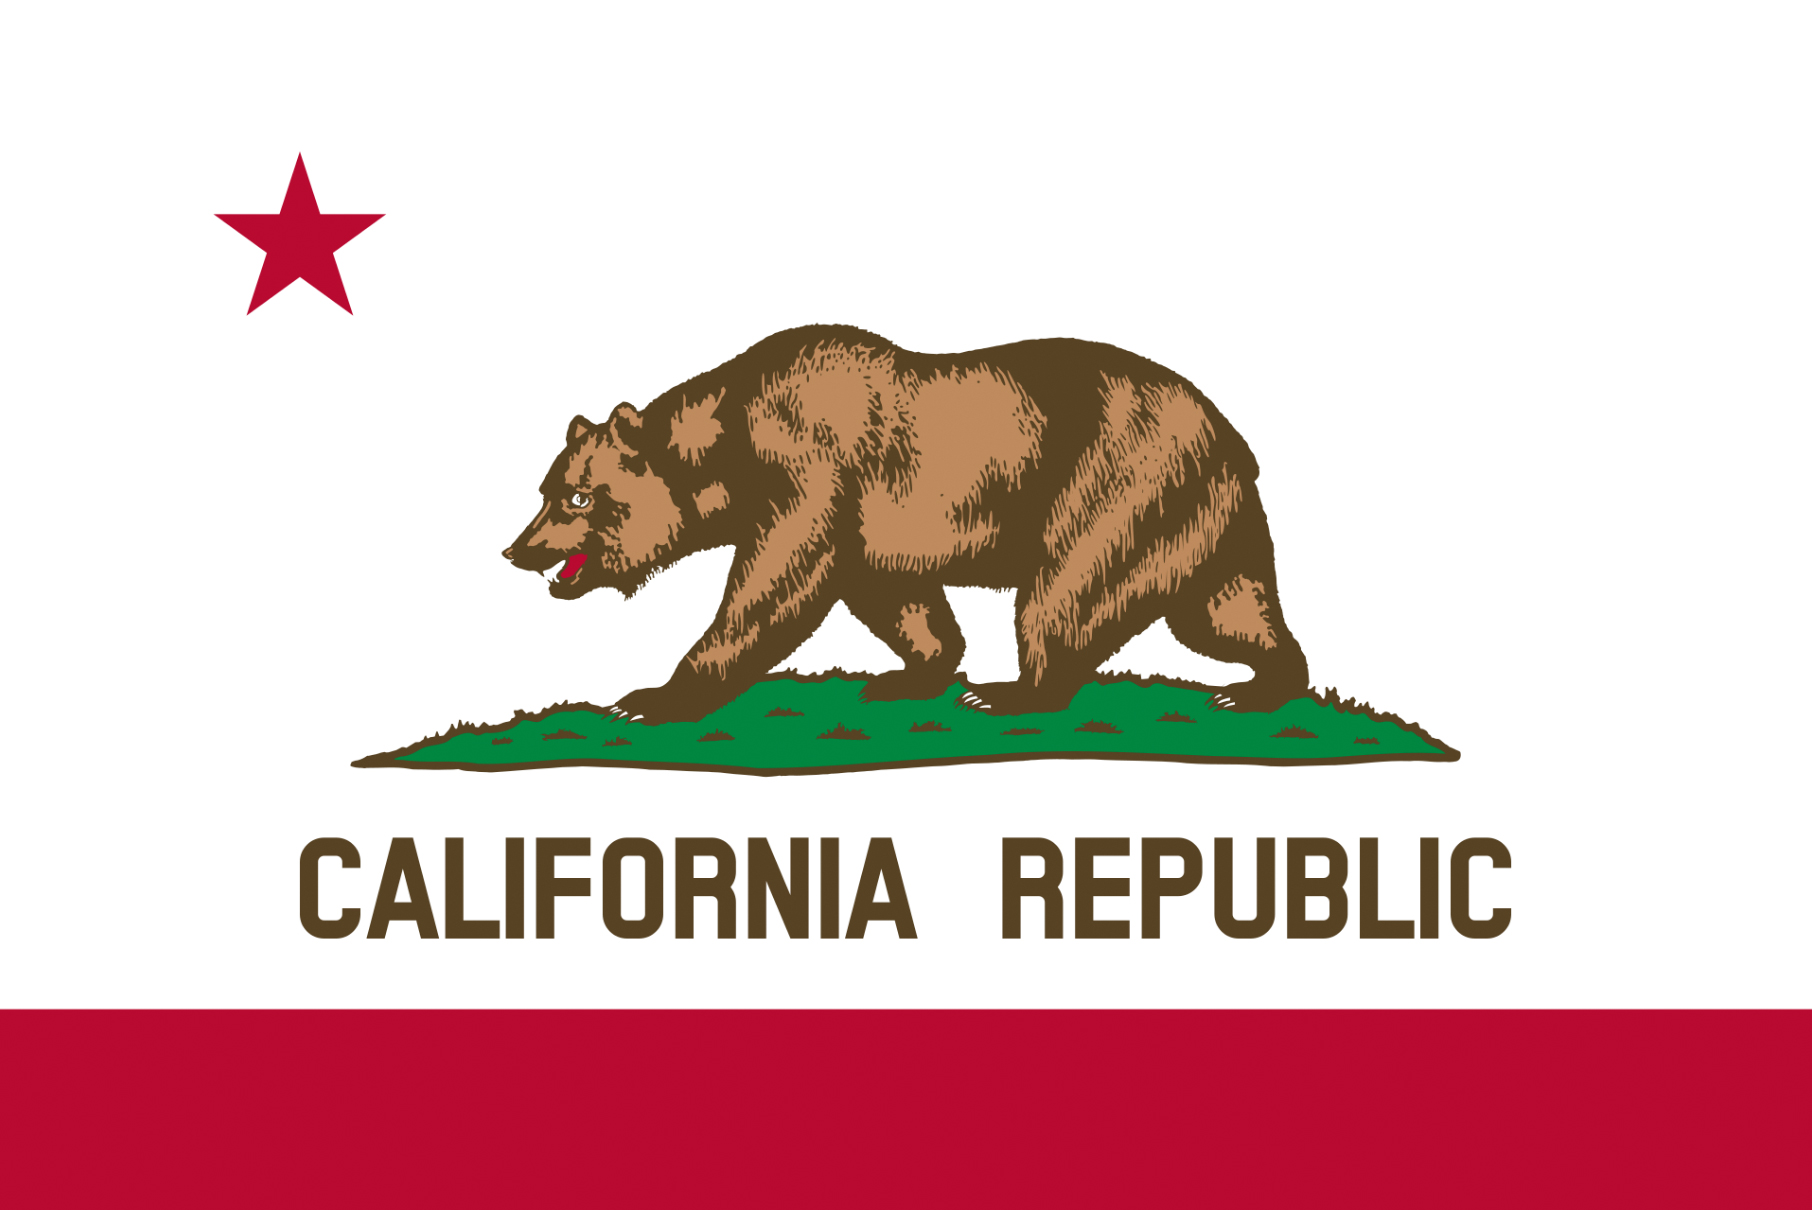 The California State flag featuring a large bear and a small red star